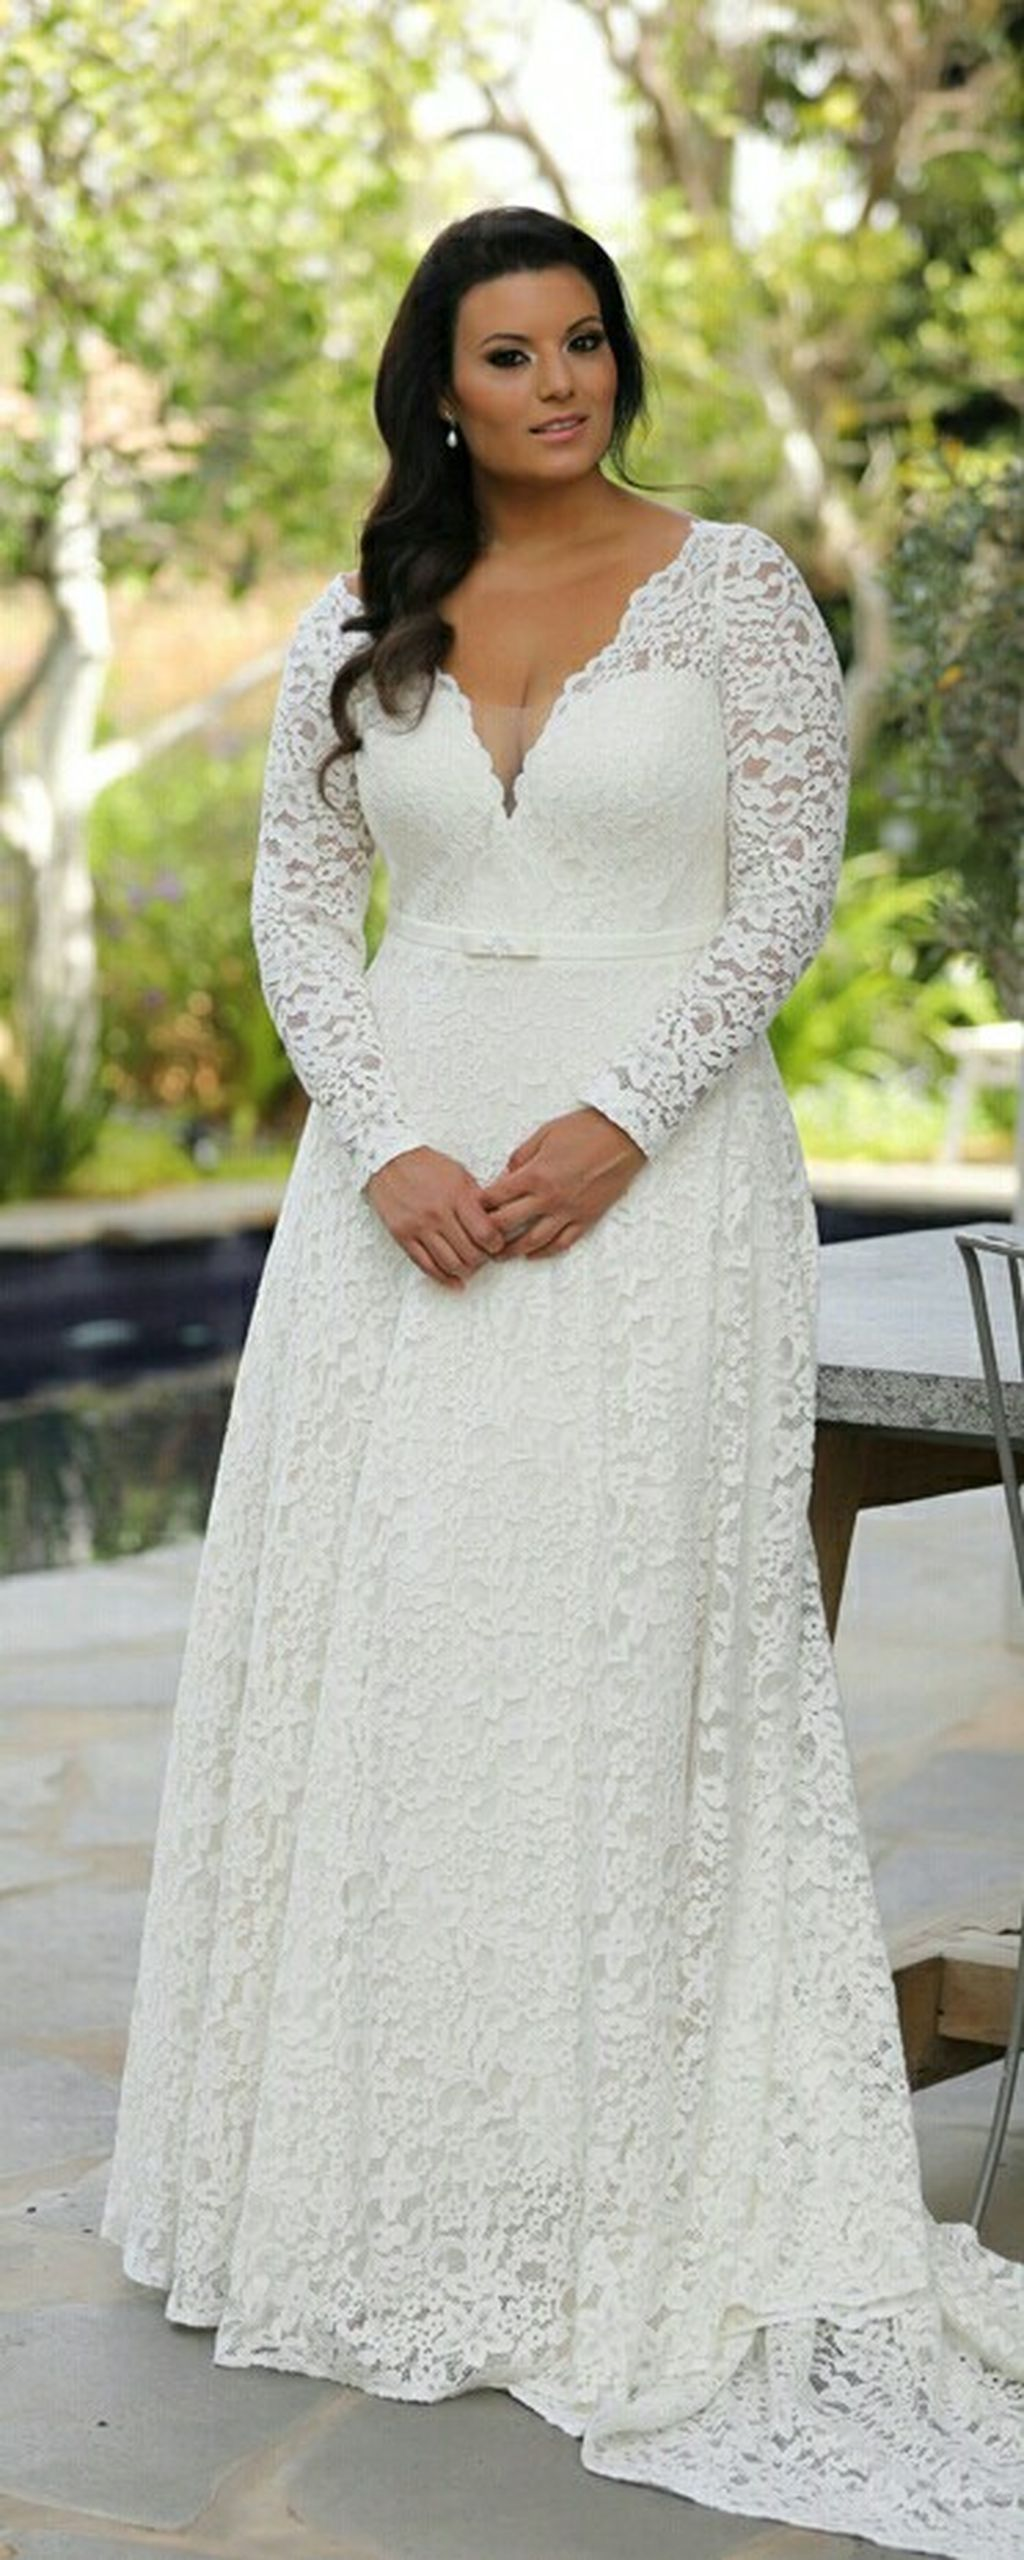 stunning plus size winter wedding dress ideas with lace dress